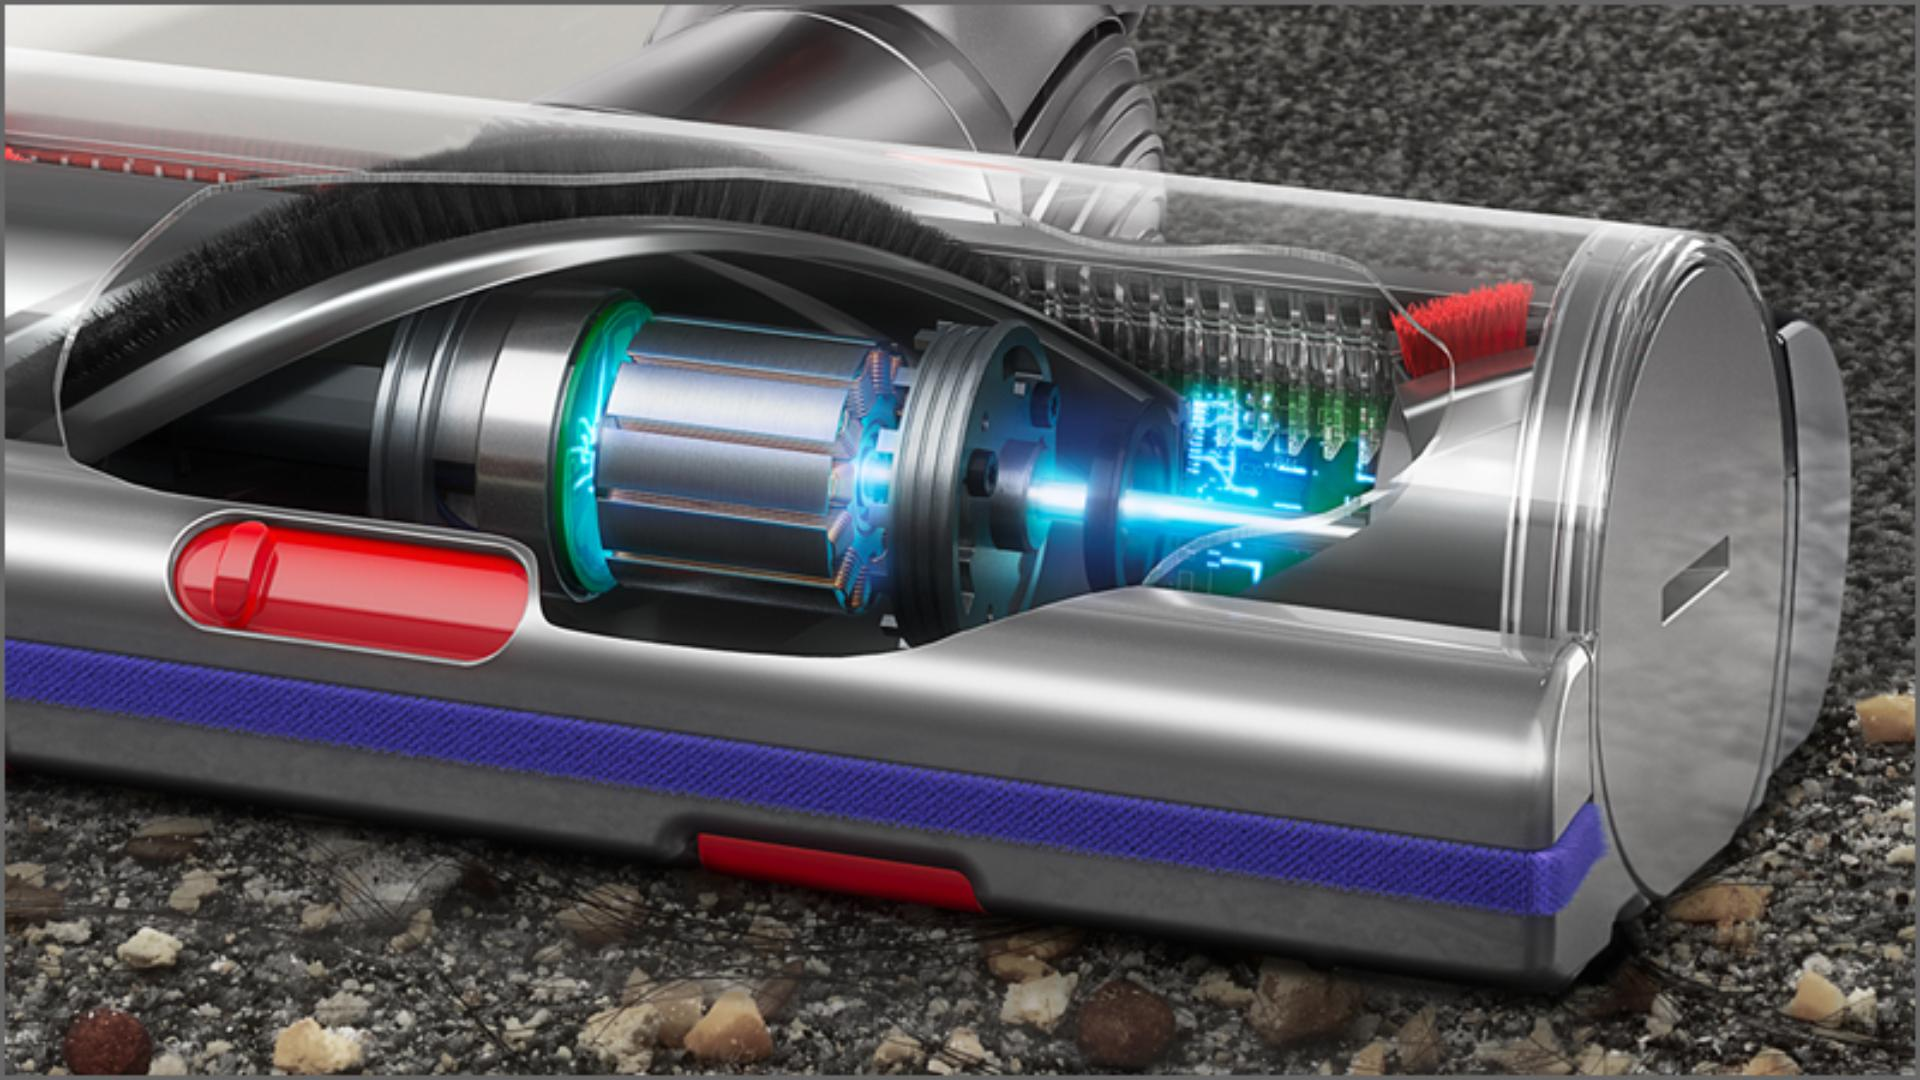 Cutaway of High Torque cleaner head with anti-tangle technology